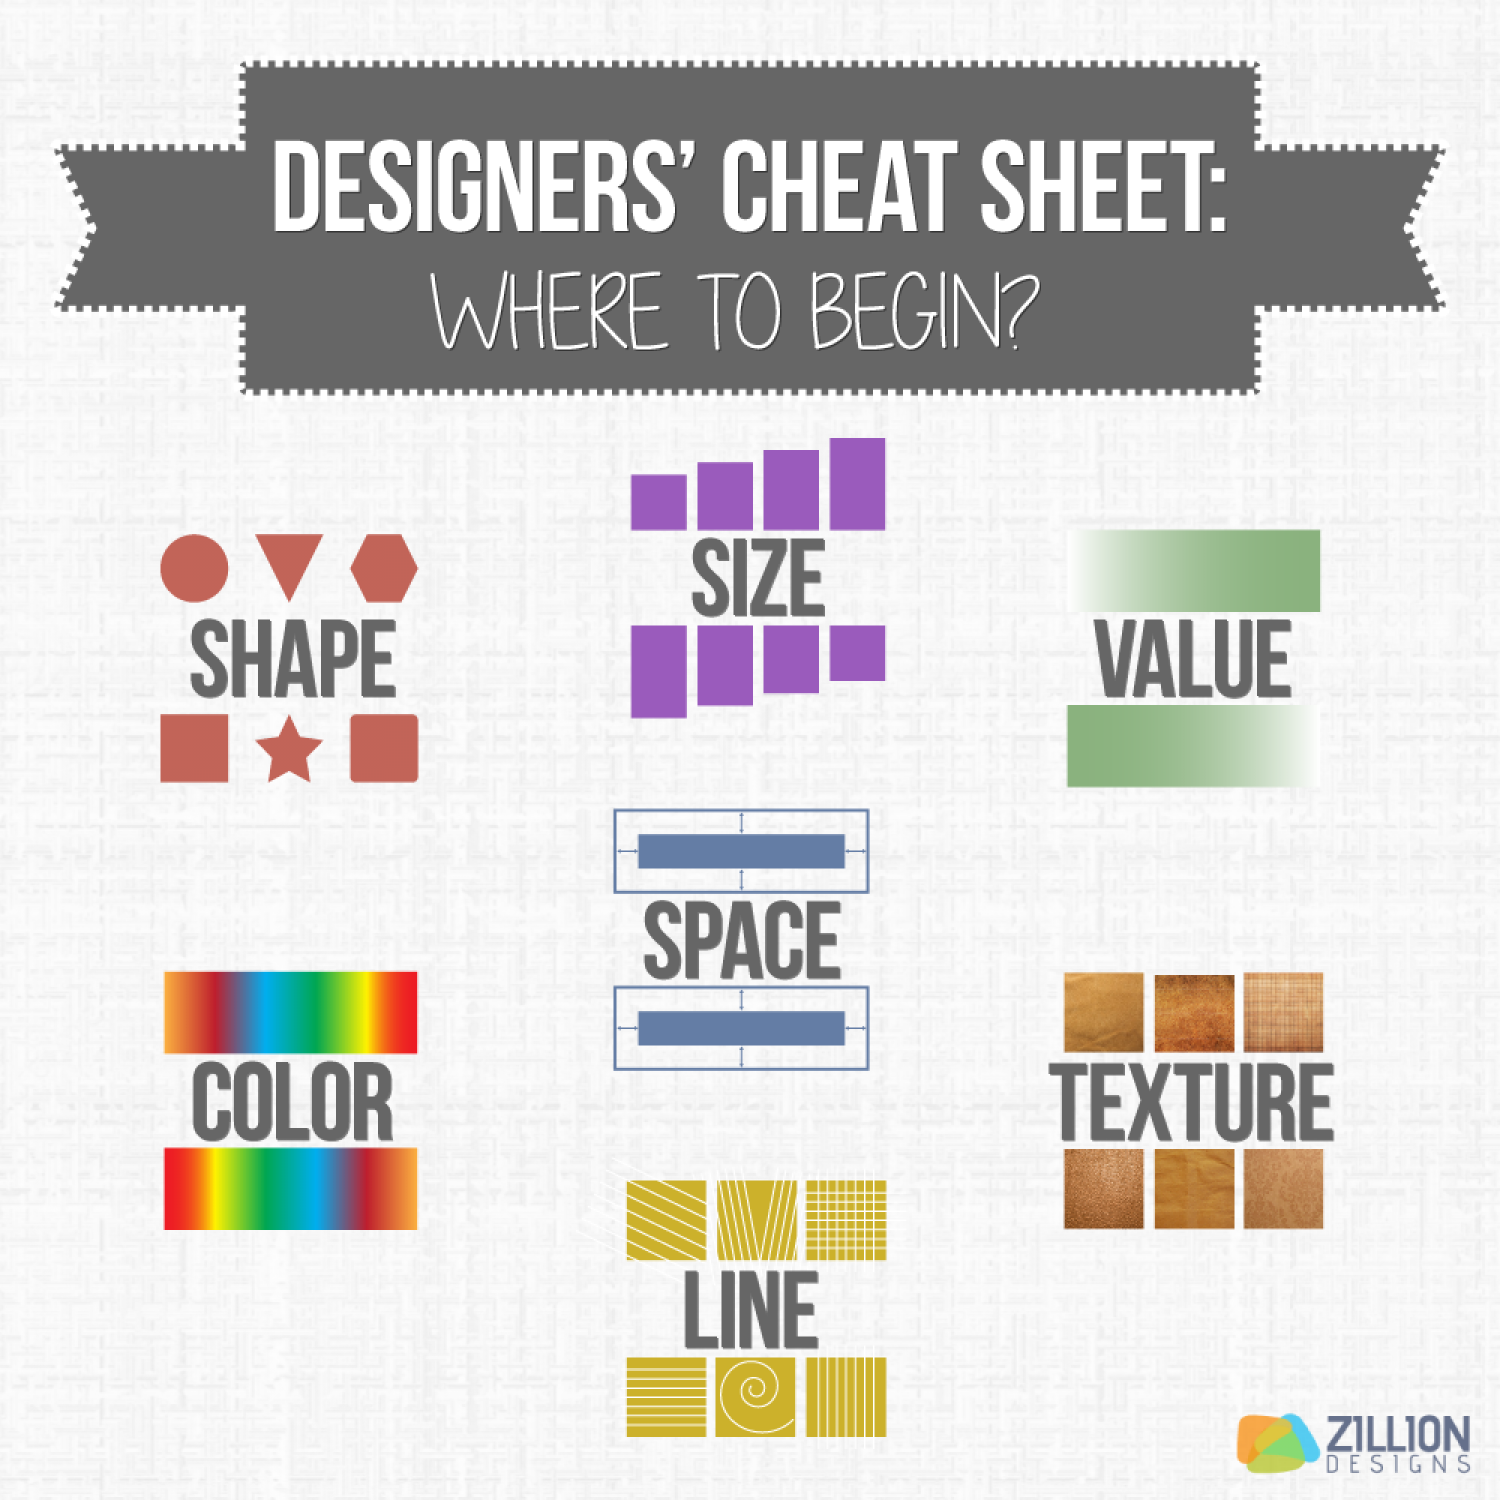 The Design Cheat Sheet Infographic